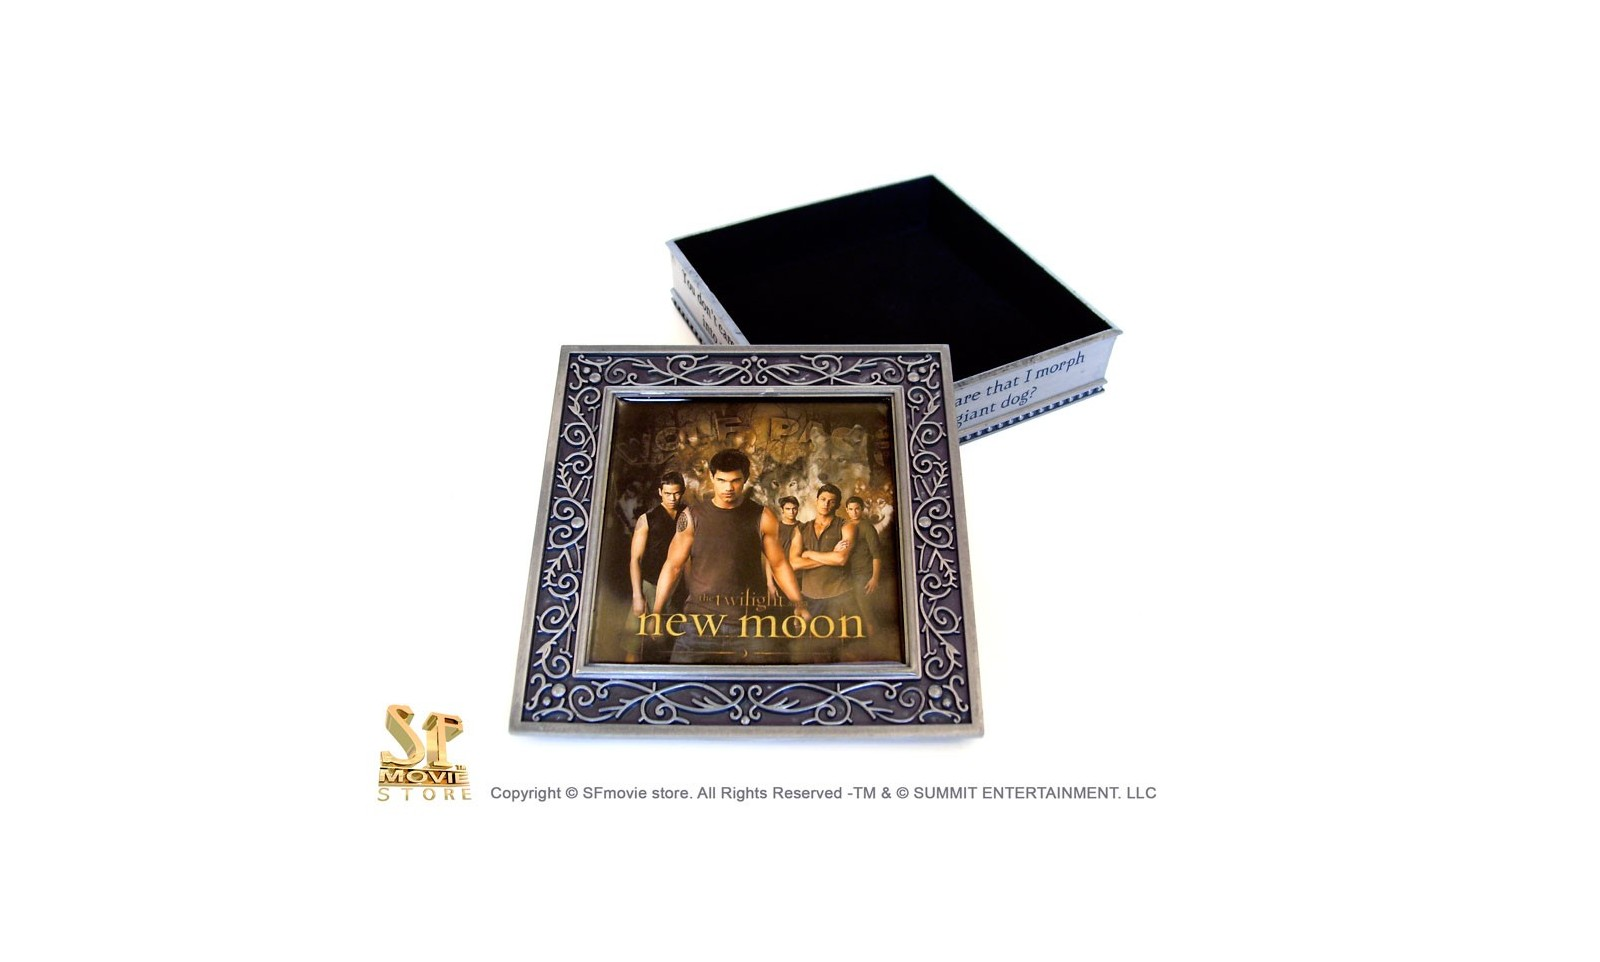 Twilight New Moon Wolf Pack Jewelry Box Movie film decorations